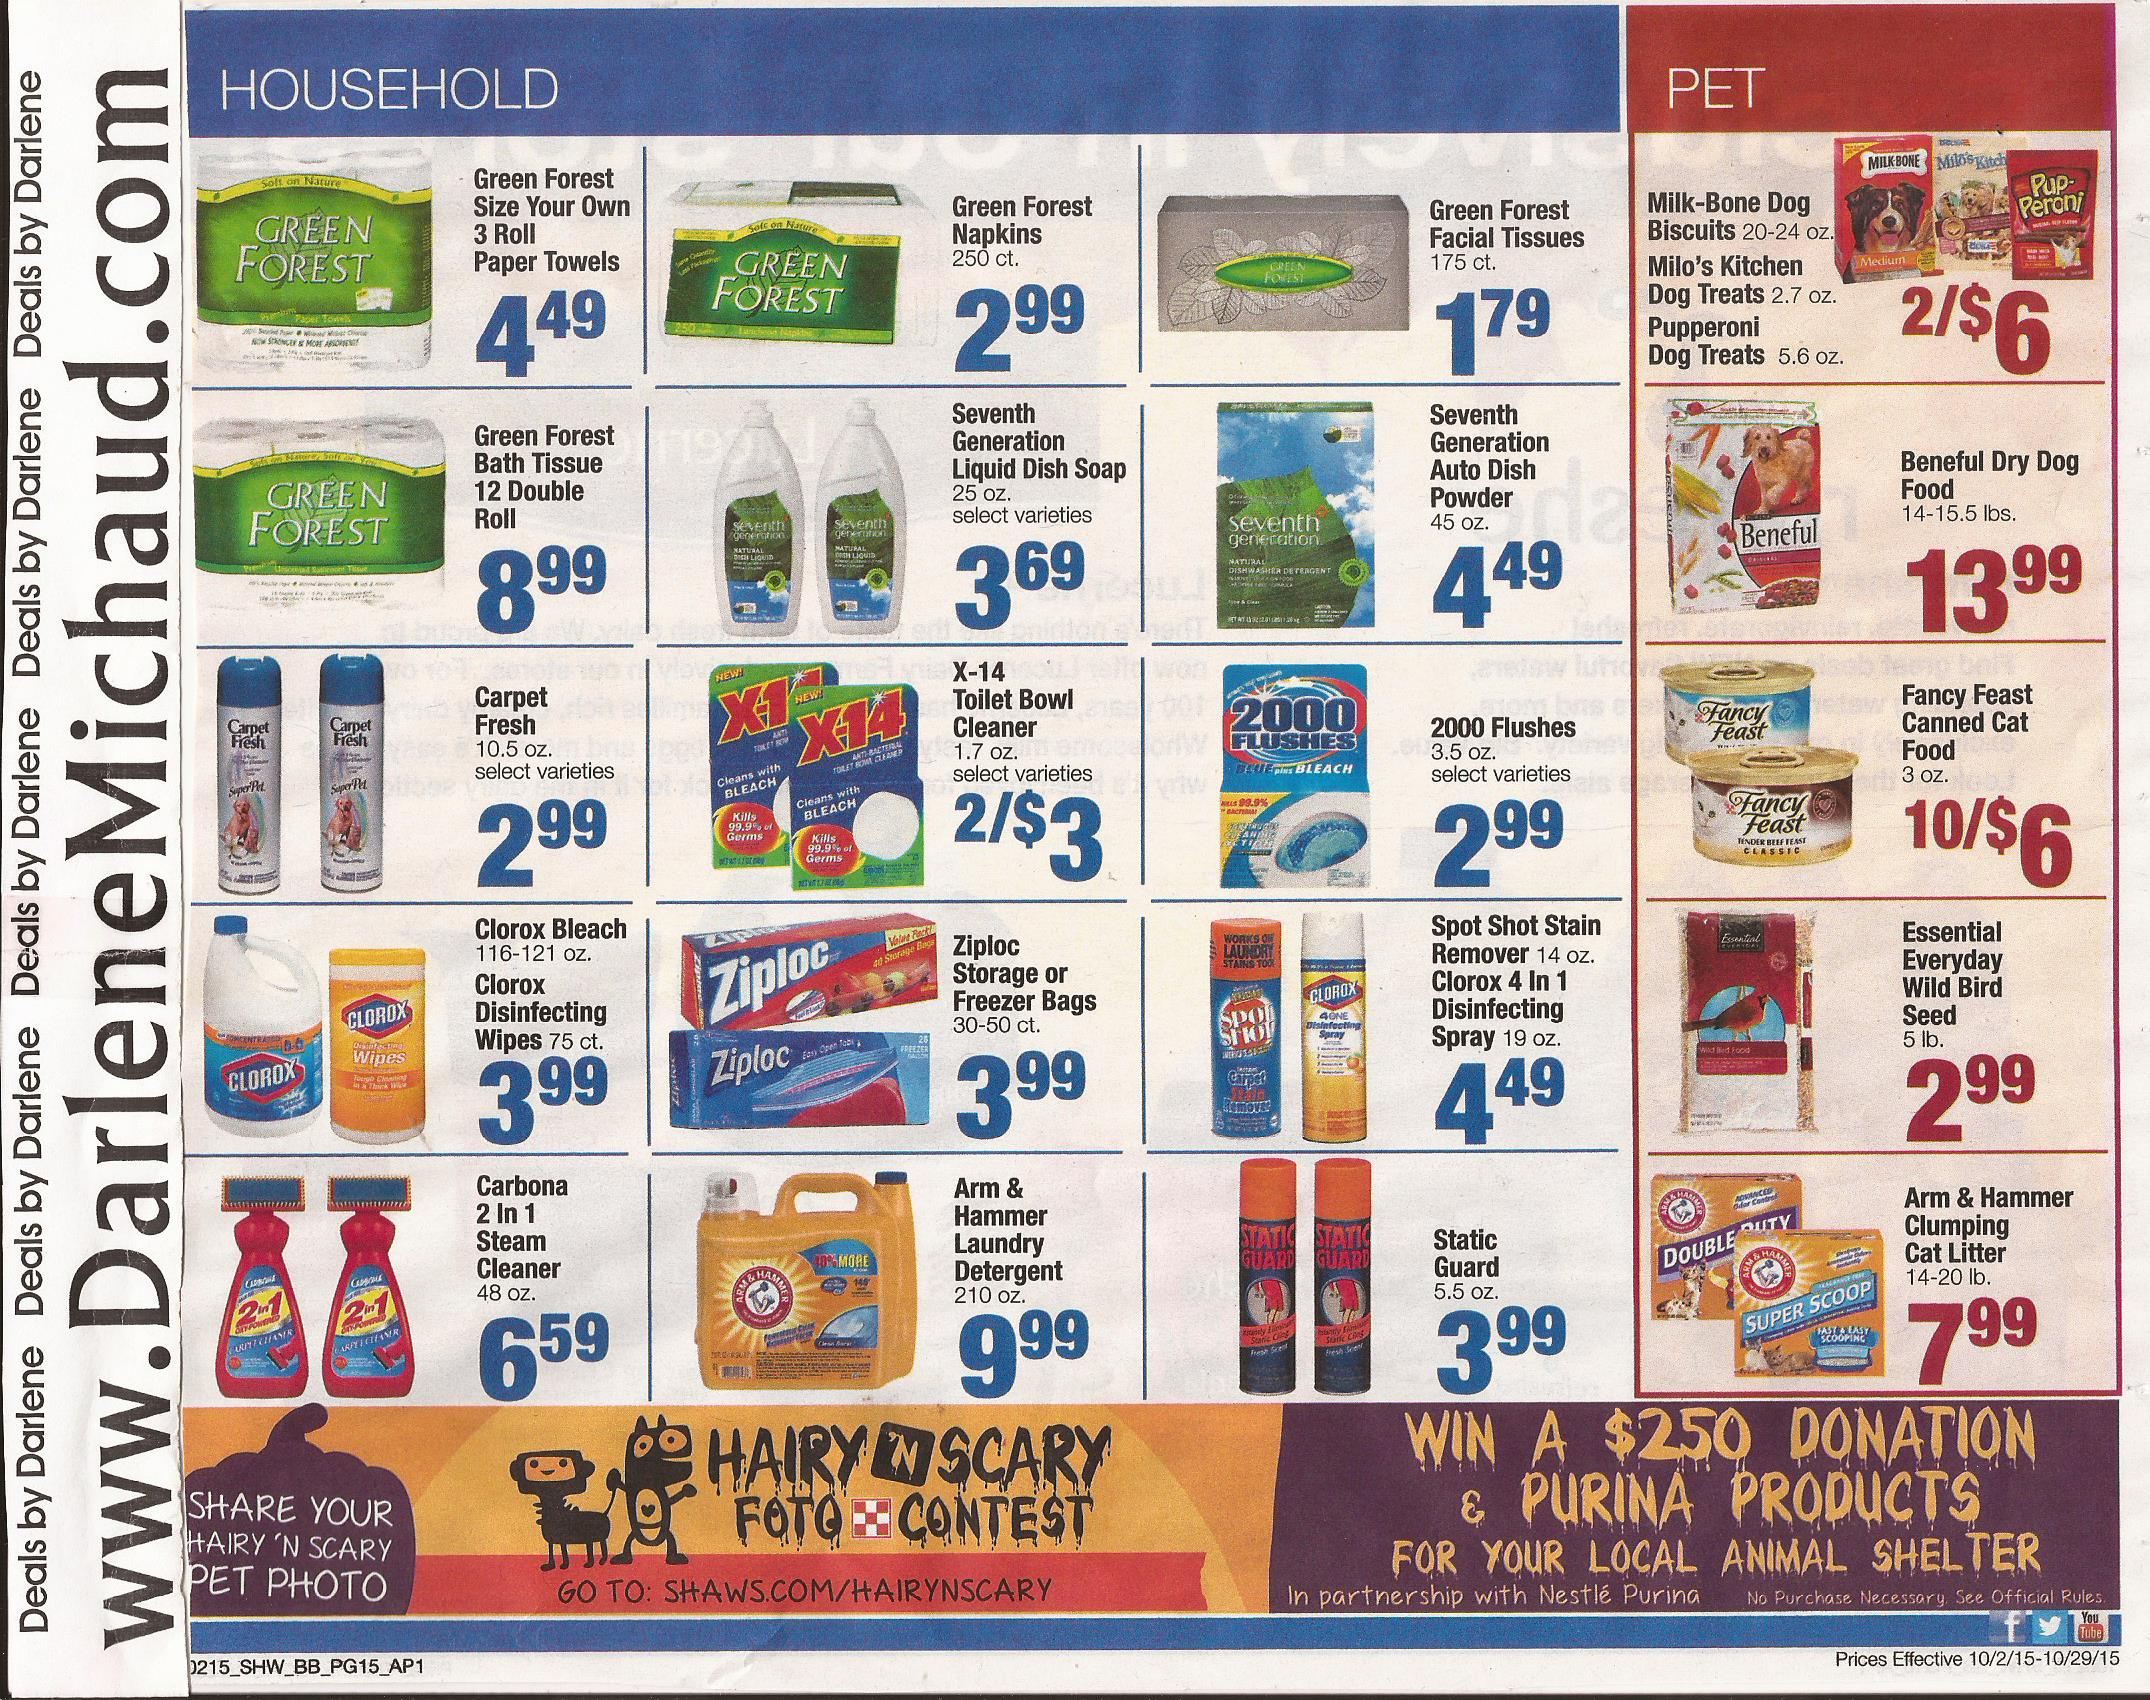 shaws-big-book-savings-10-2-10-29-page-15